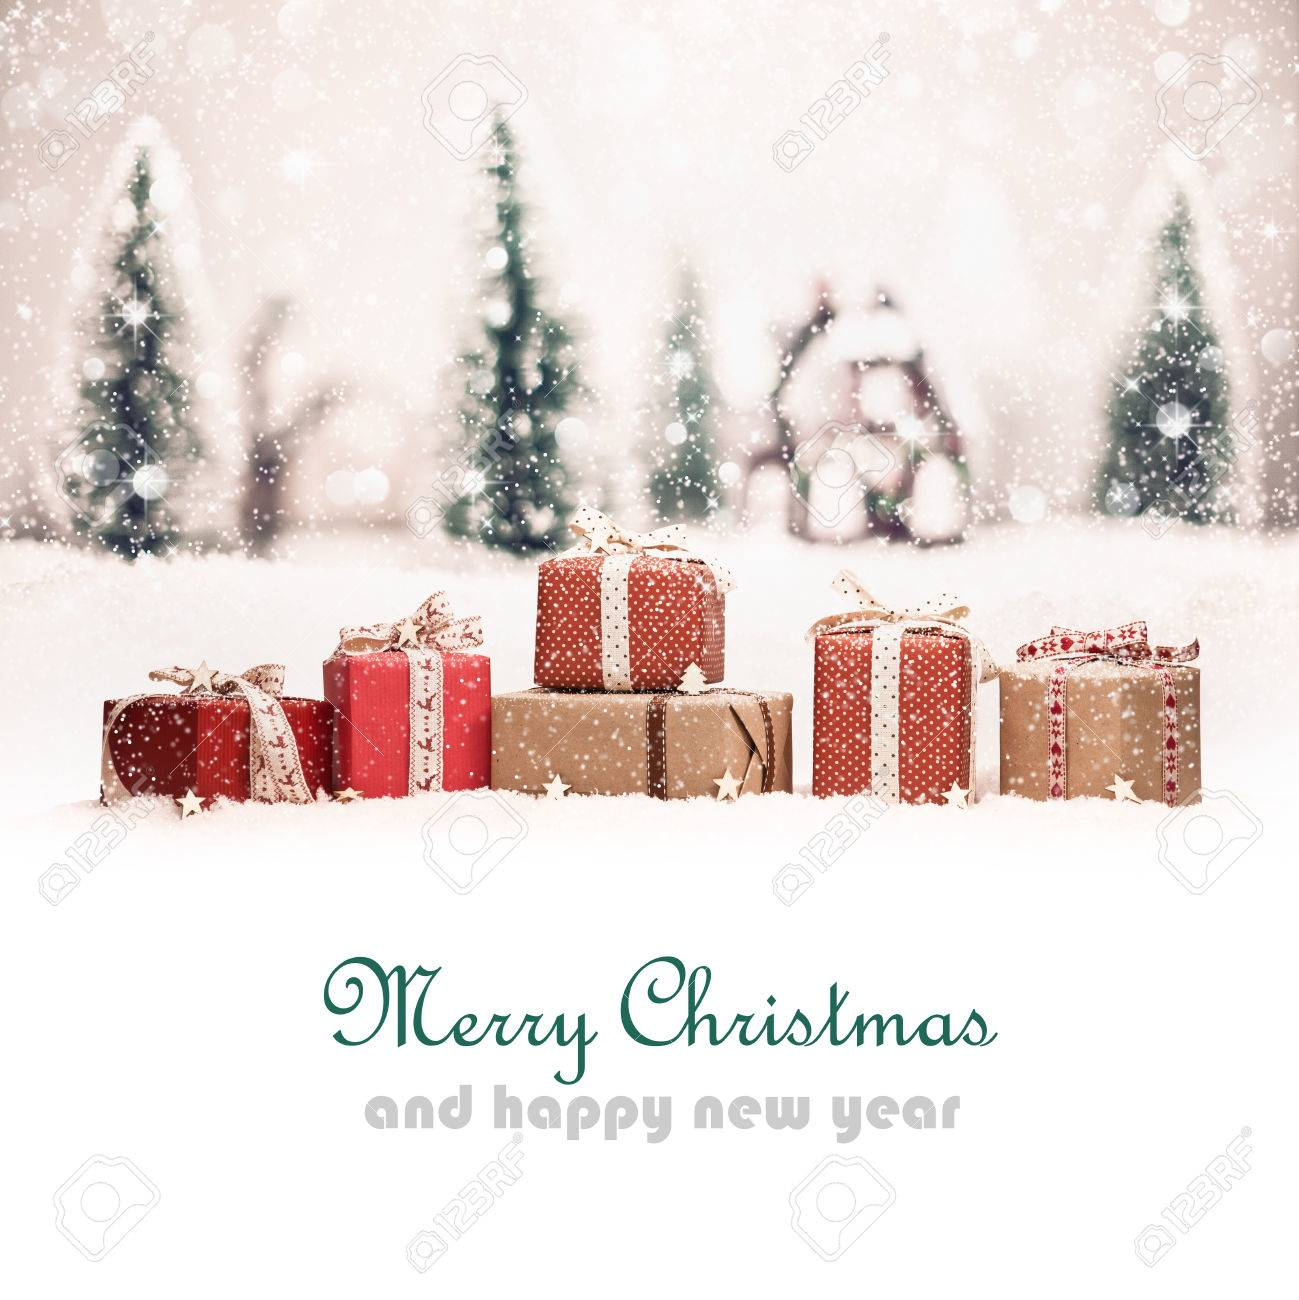 Christmas landscape with gifts and snow. Christmas background Standard-Bild - 49156671